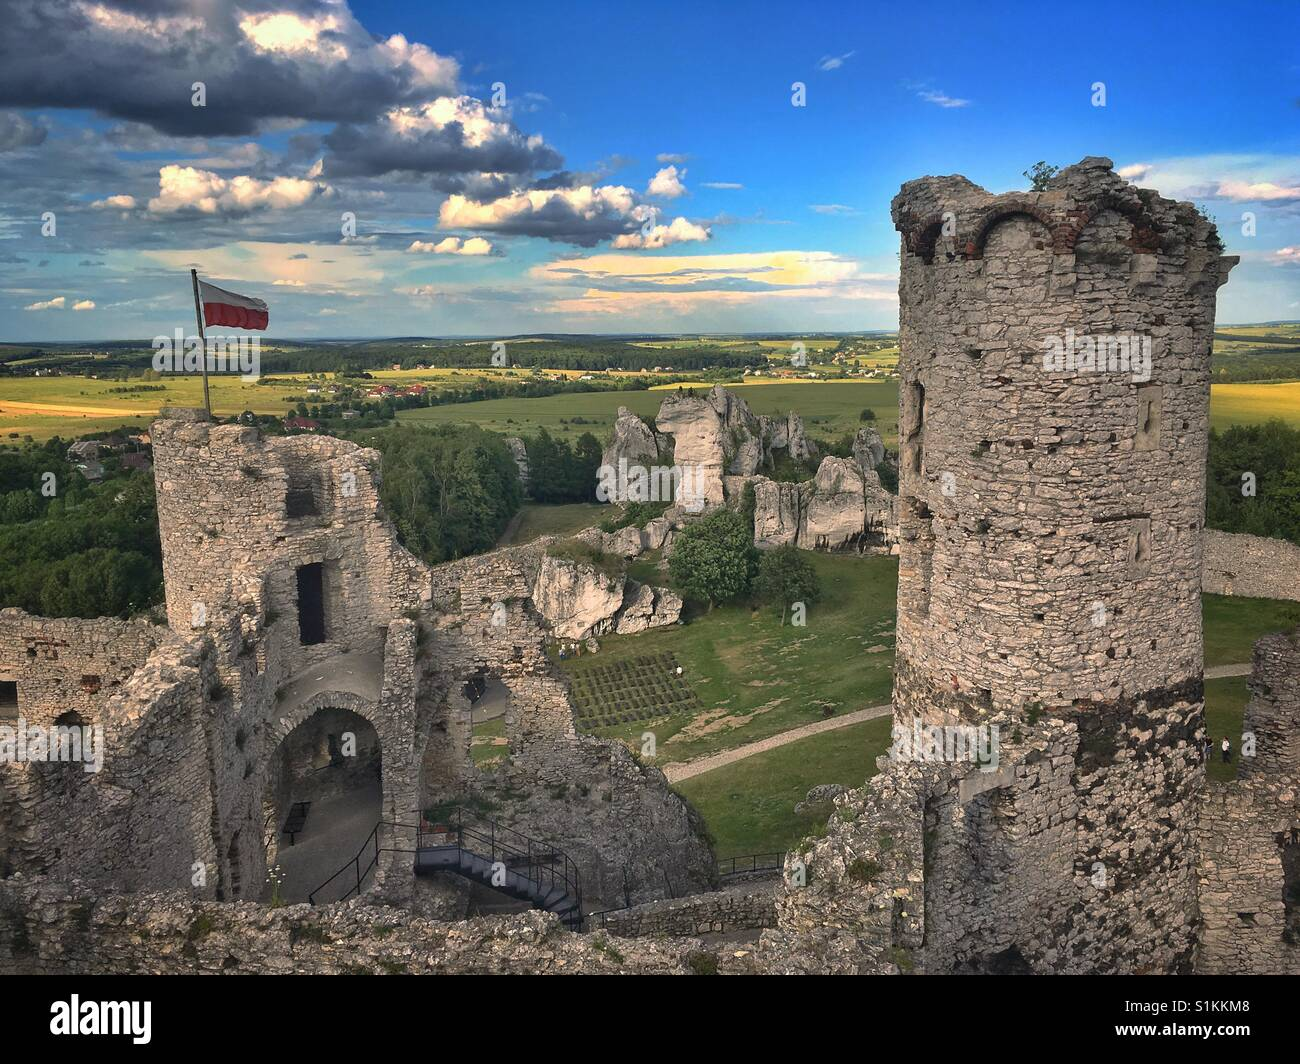 Ogrodzieniec Castle ruins, one of castles of so called Trail of the Eagles Nests, in Podzamcze village in Poland Stock Photo